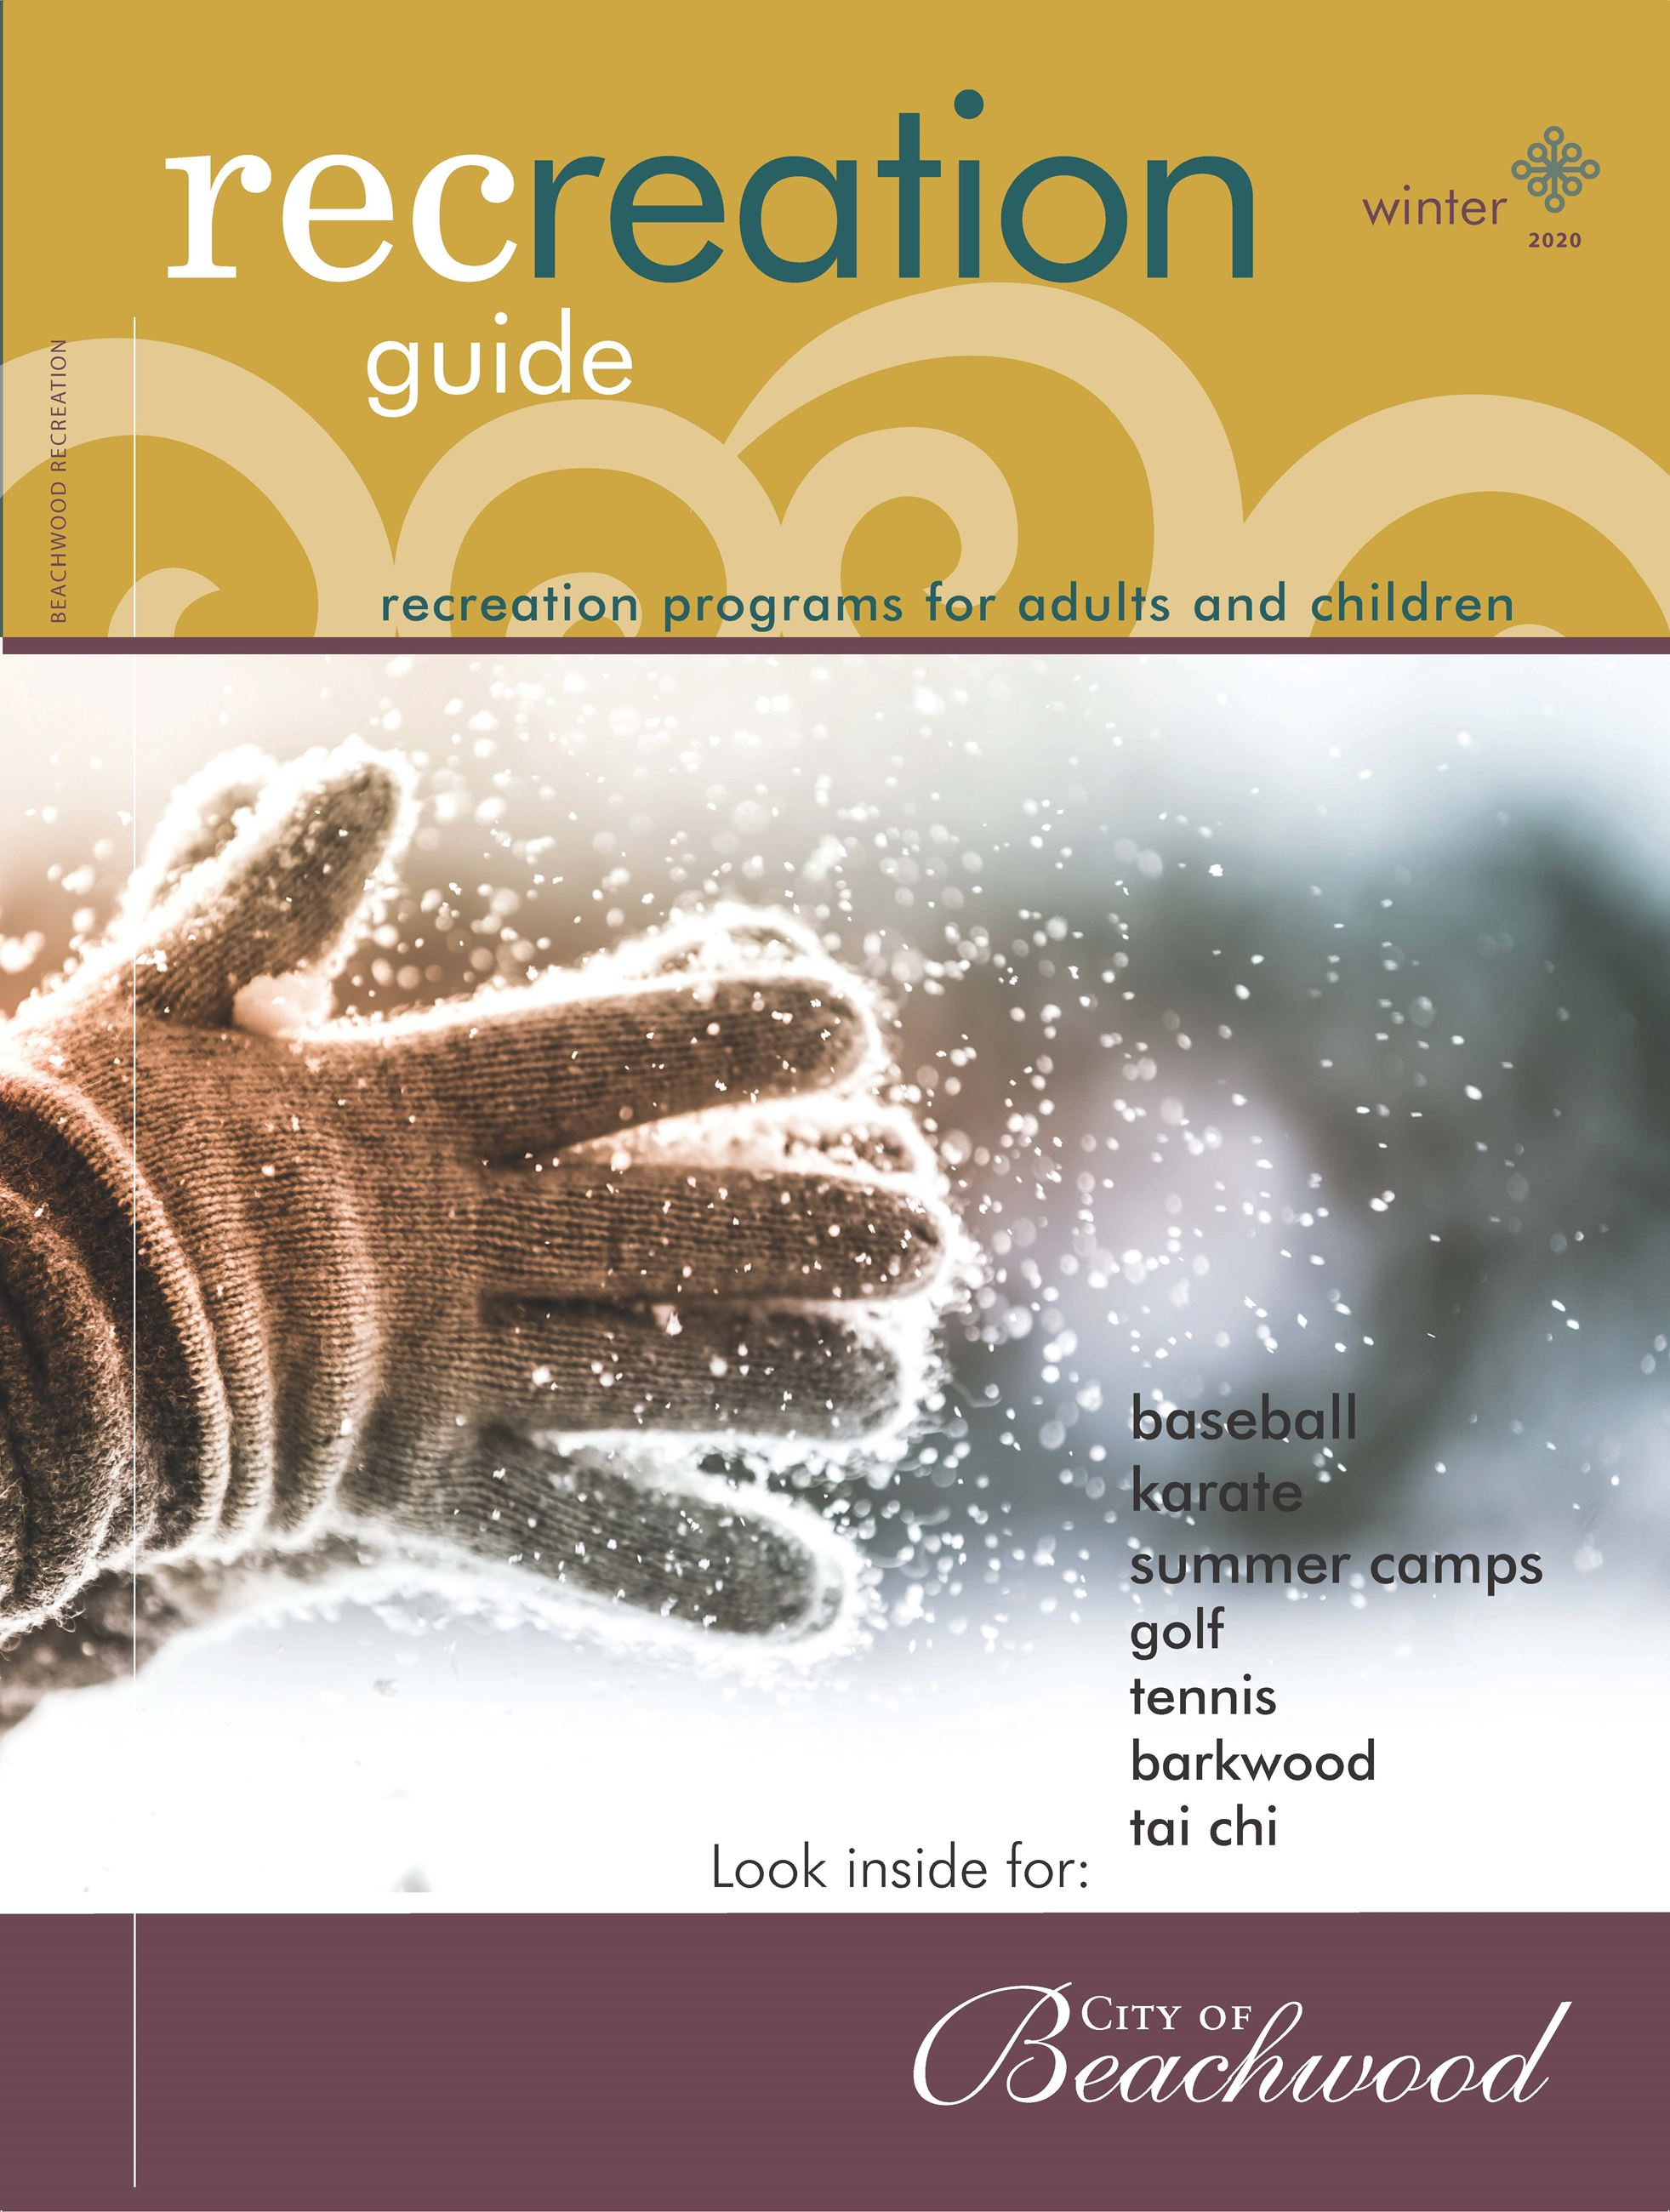 Winter Recreation 2020 Guide front cover